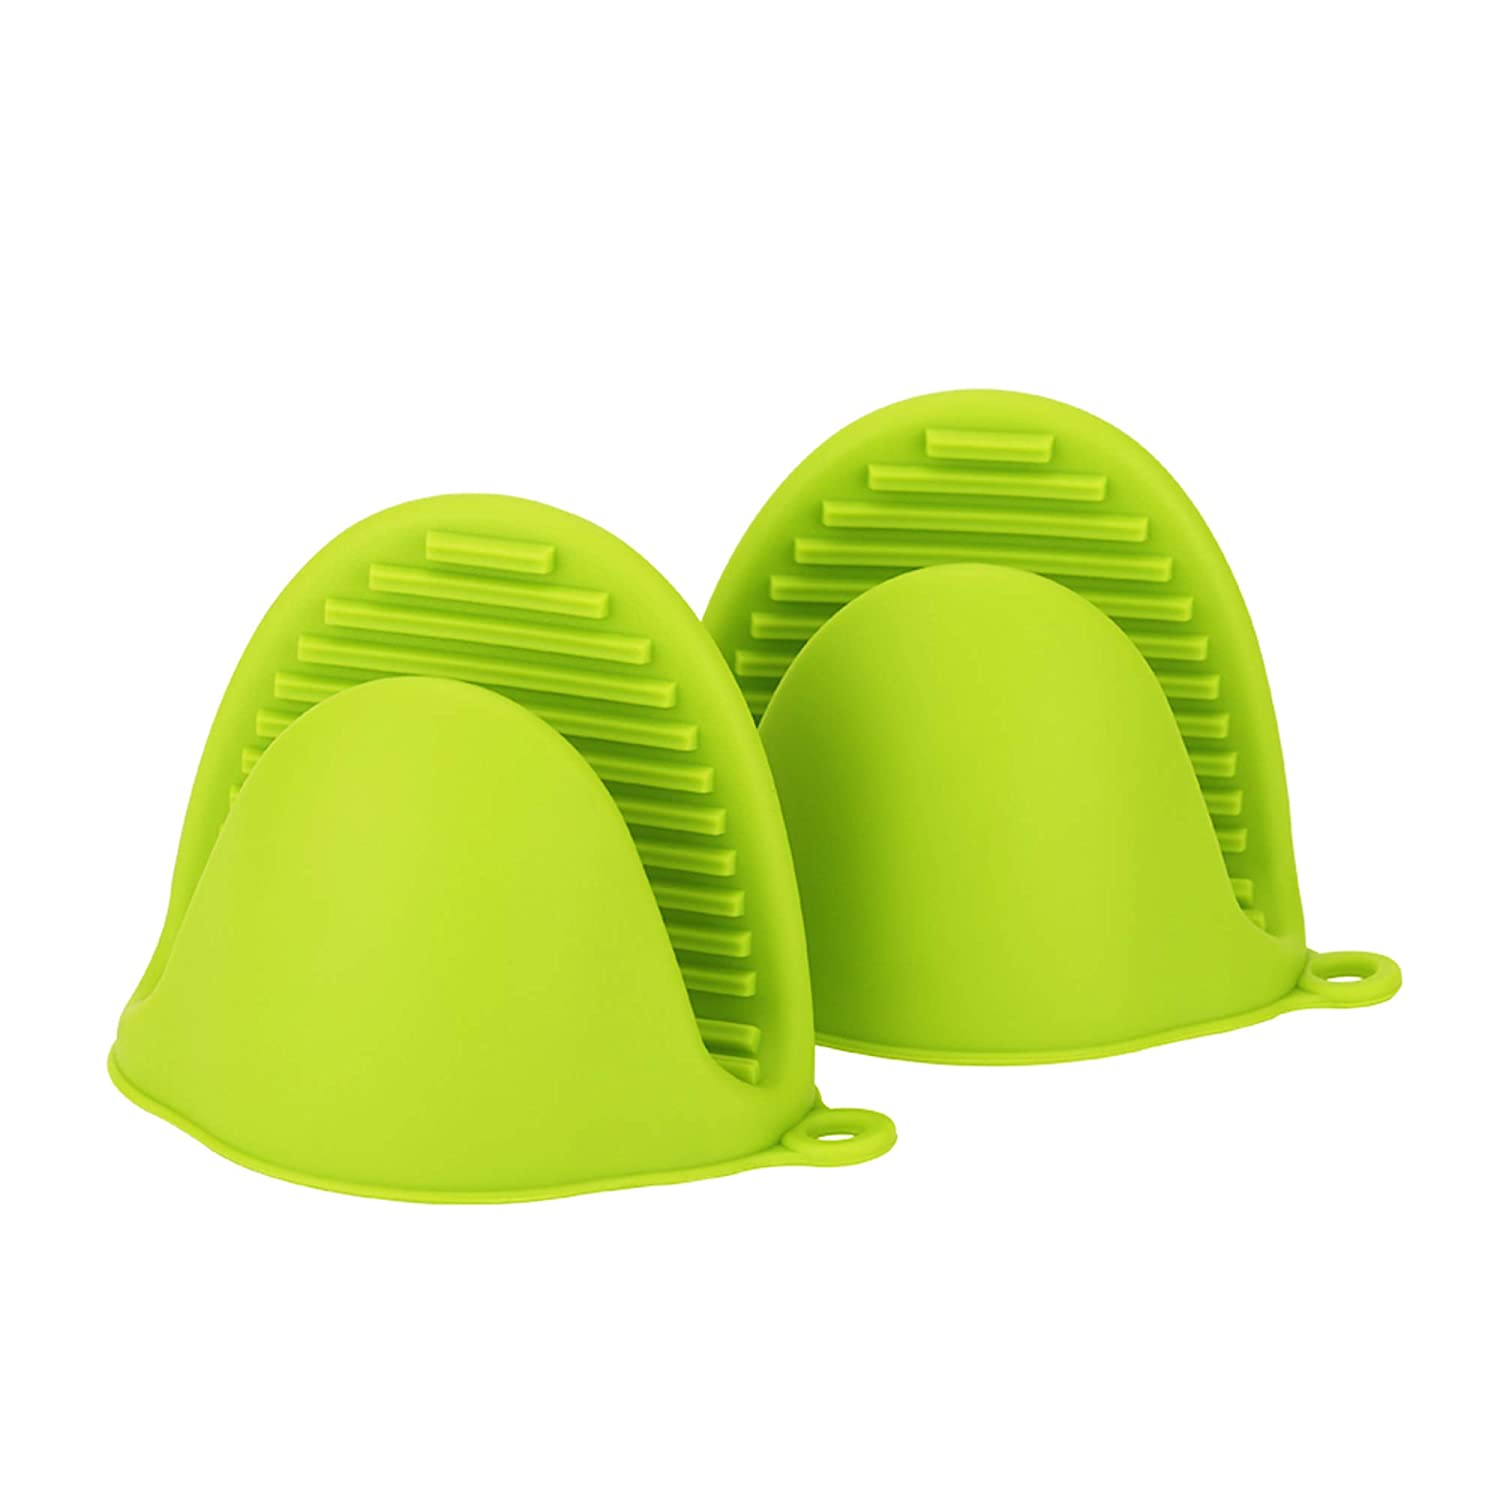 2Pcs Set Pinch Mitts Cooking Baking Finger Protector Pinch Grips-Heat Resistant for Instant Pot or Kitchen use as Potholder or Baking Holder (Green)